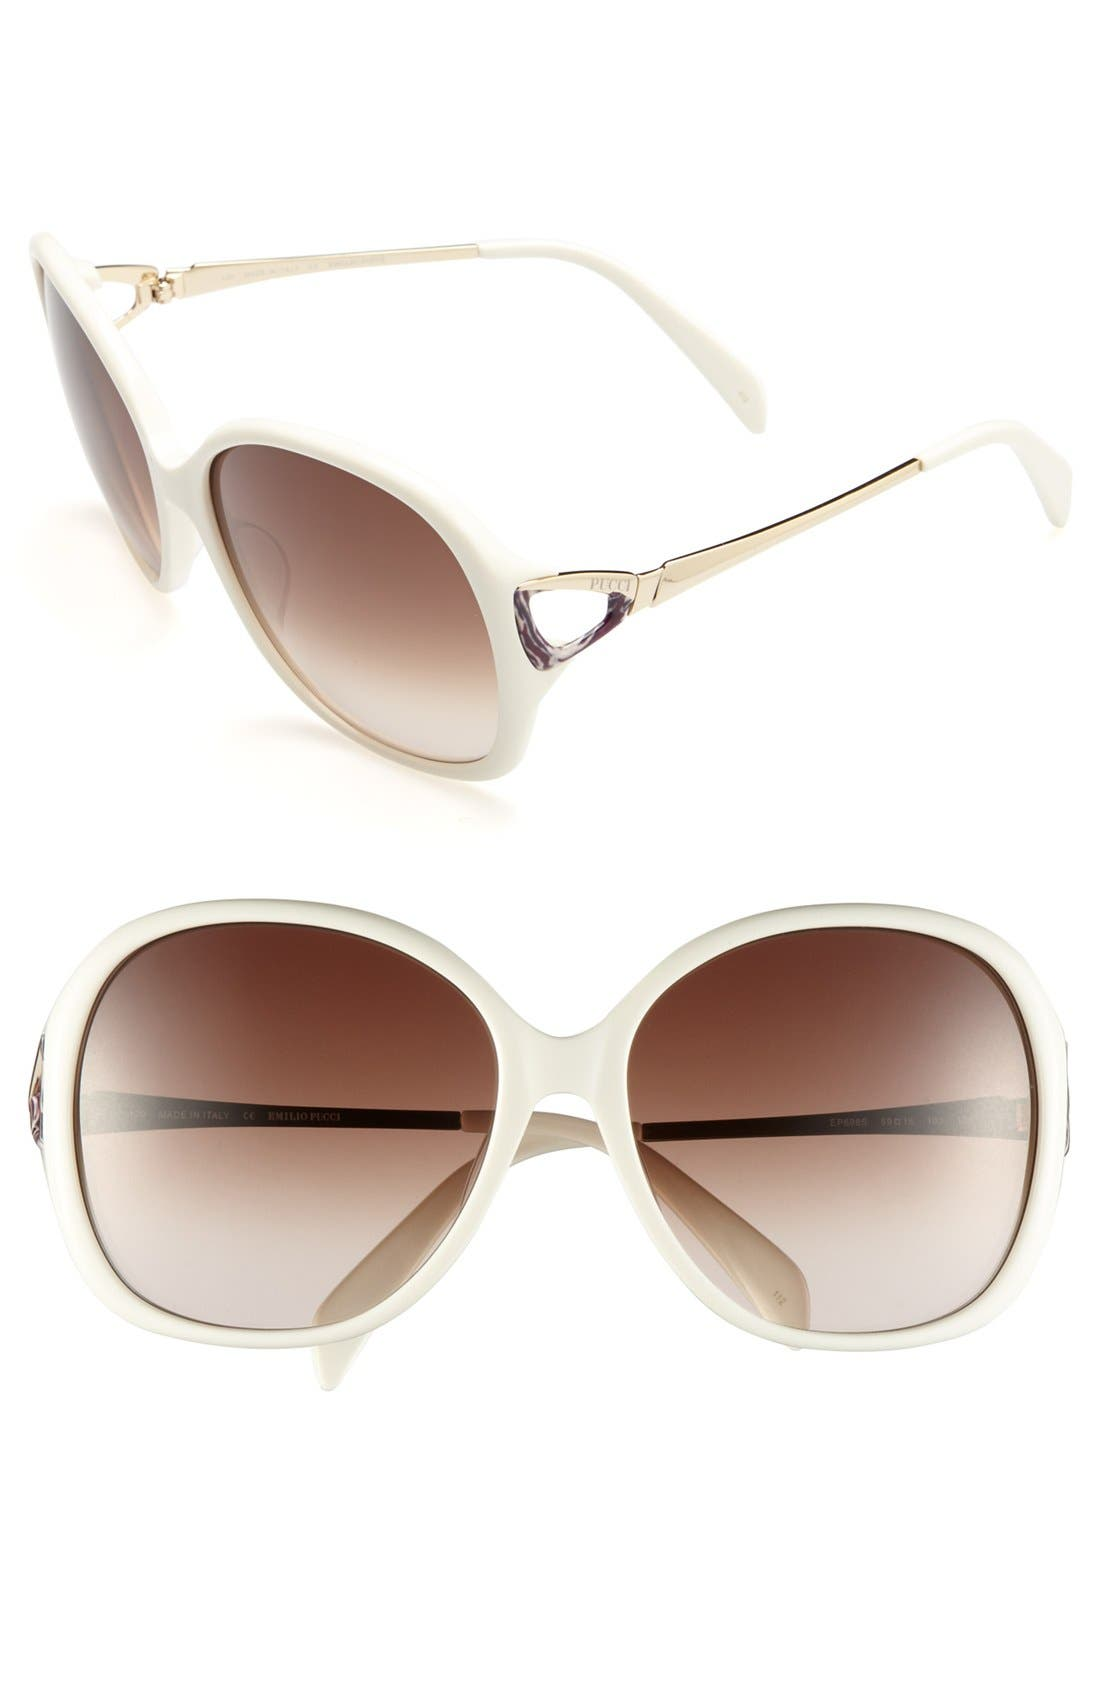 Main Image - Emilio Pucci 59mm Sunglasses (Special Purchase)